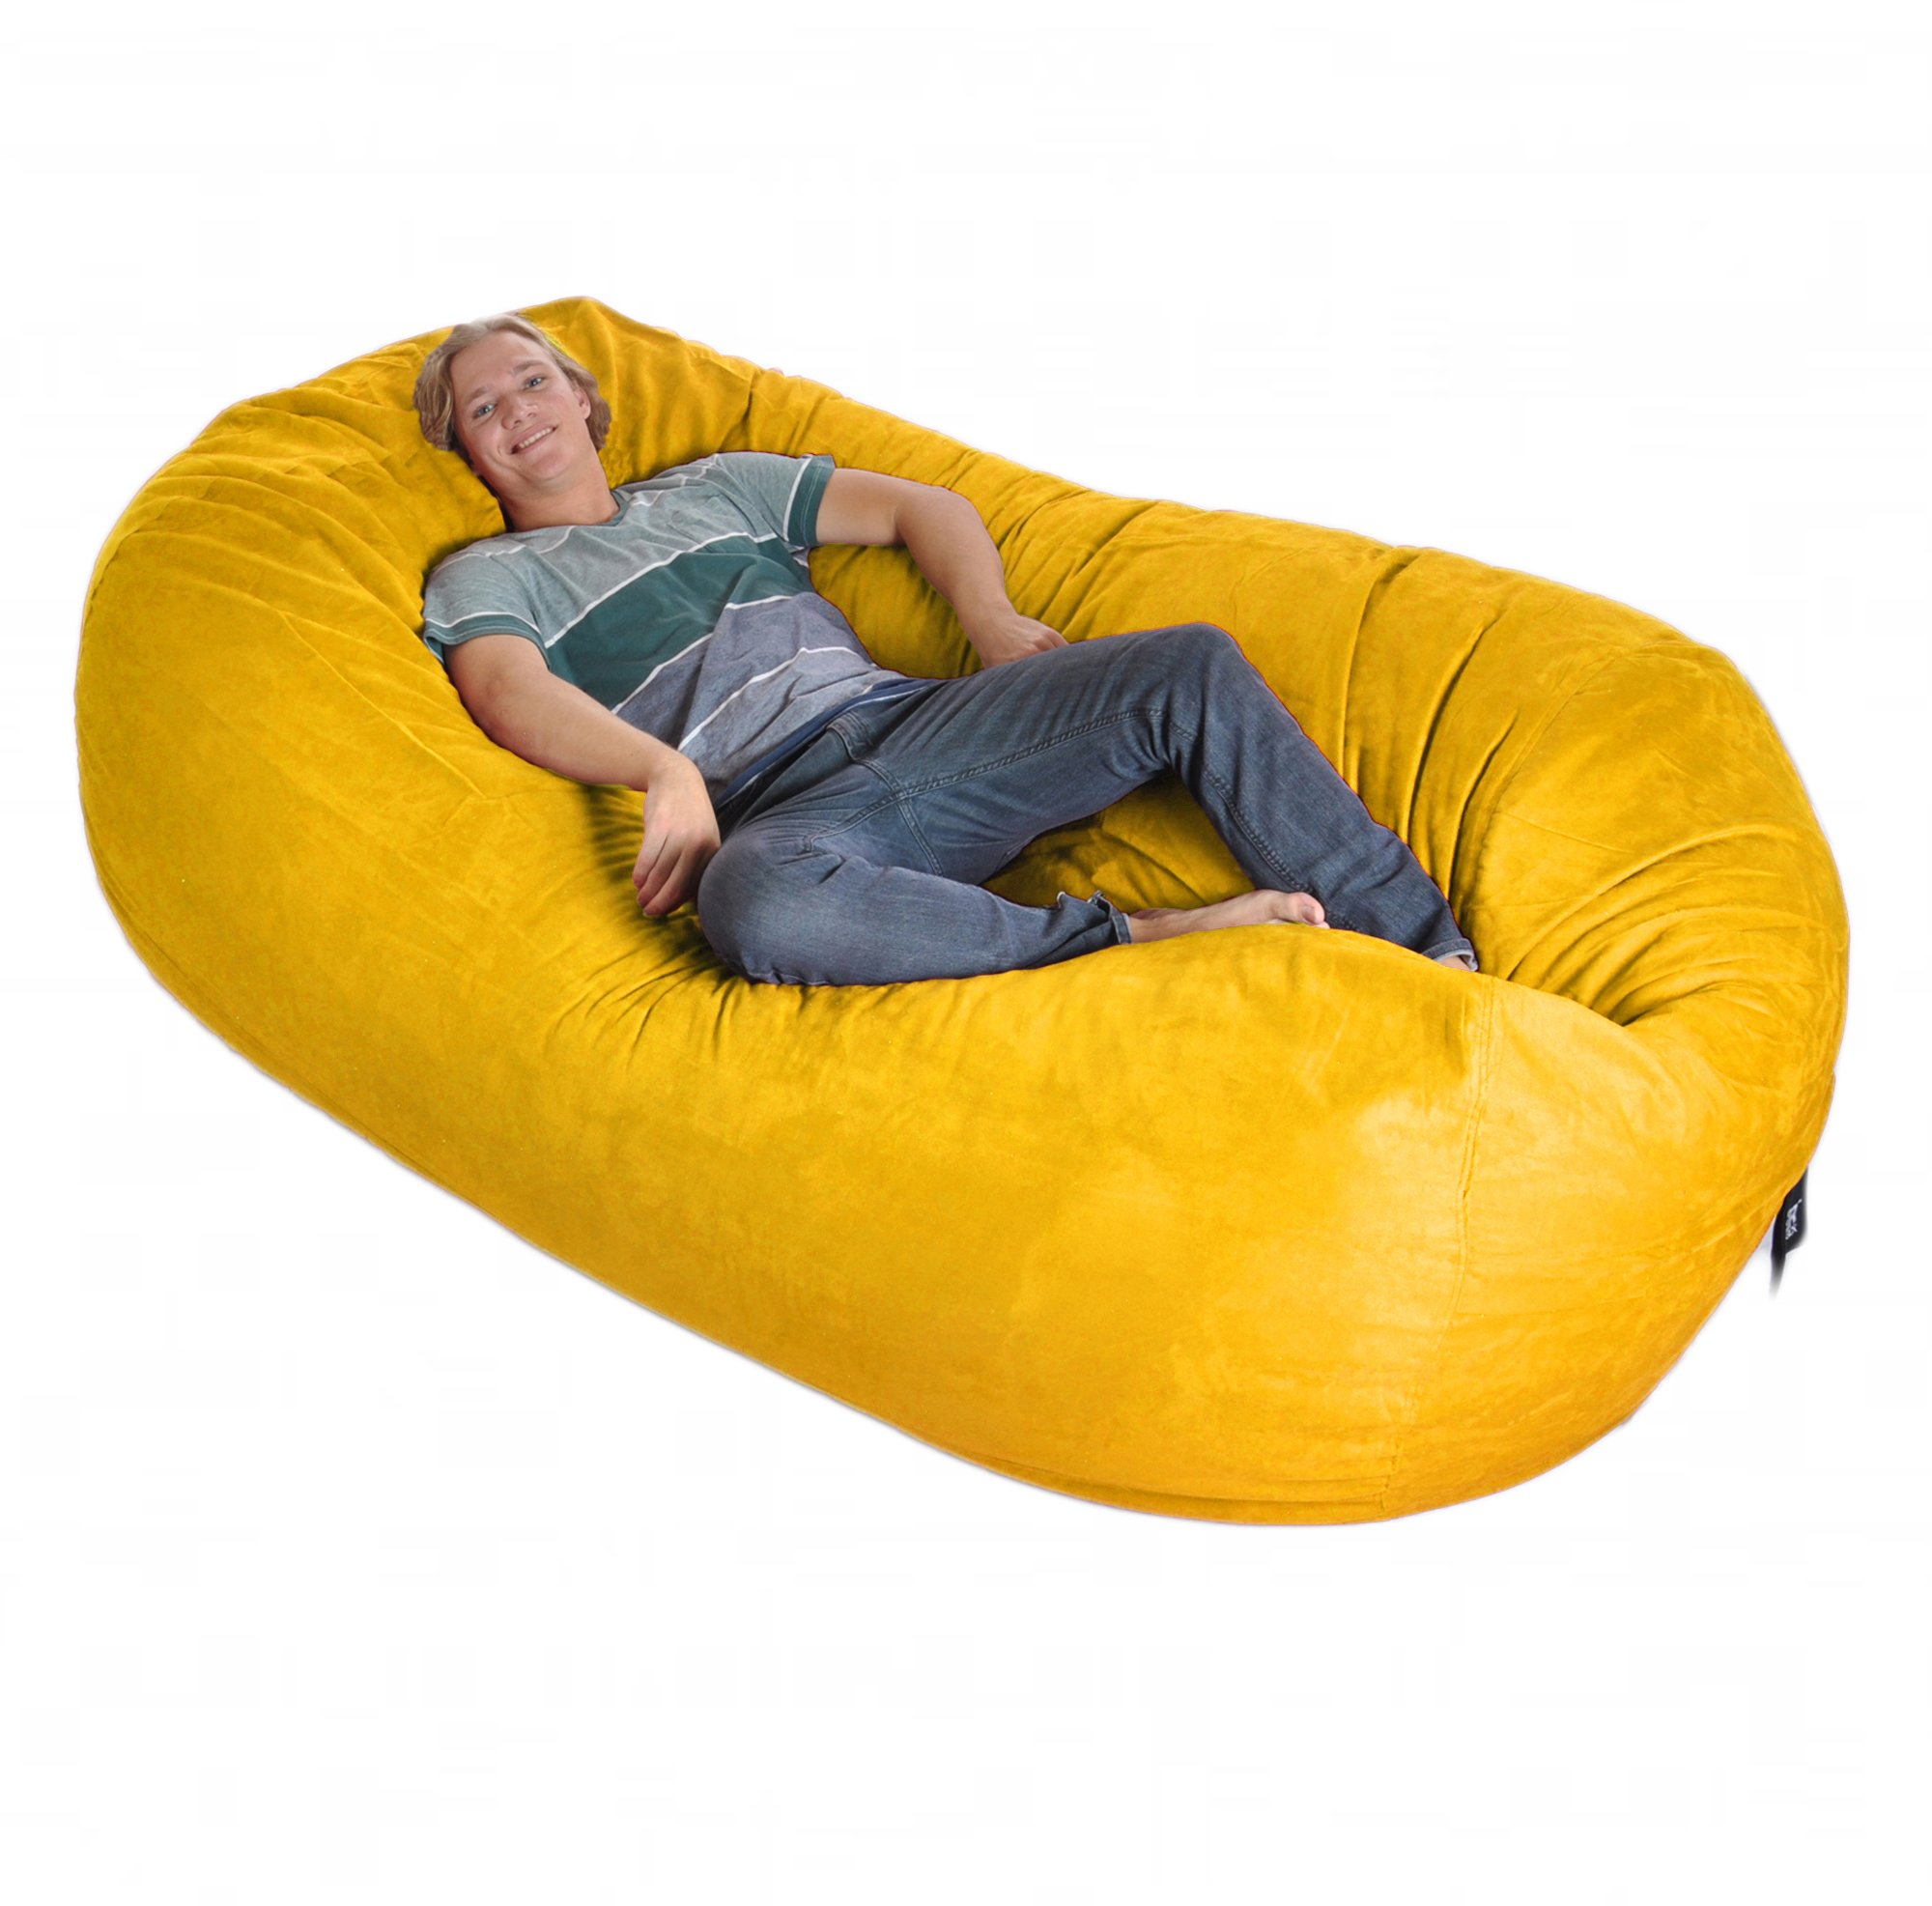 8' Oval Yellow SLACKER sack foam Bean Bag Couch XXL Beanbag Chair Lemon